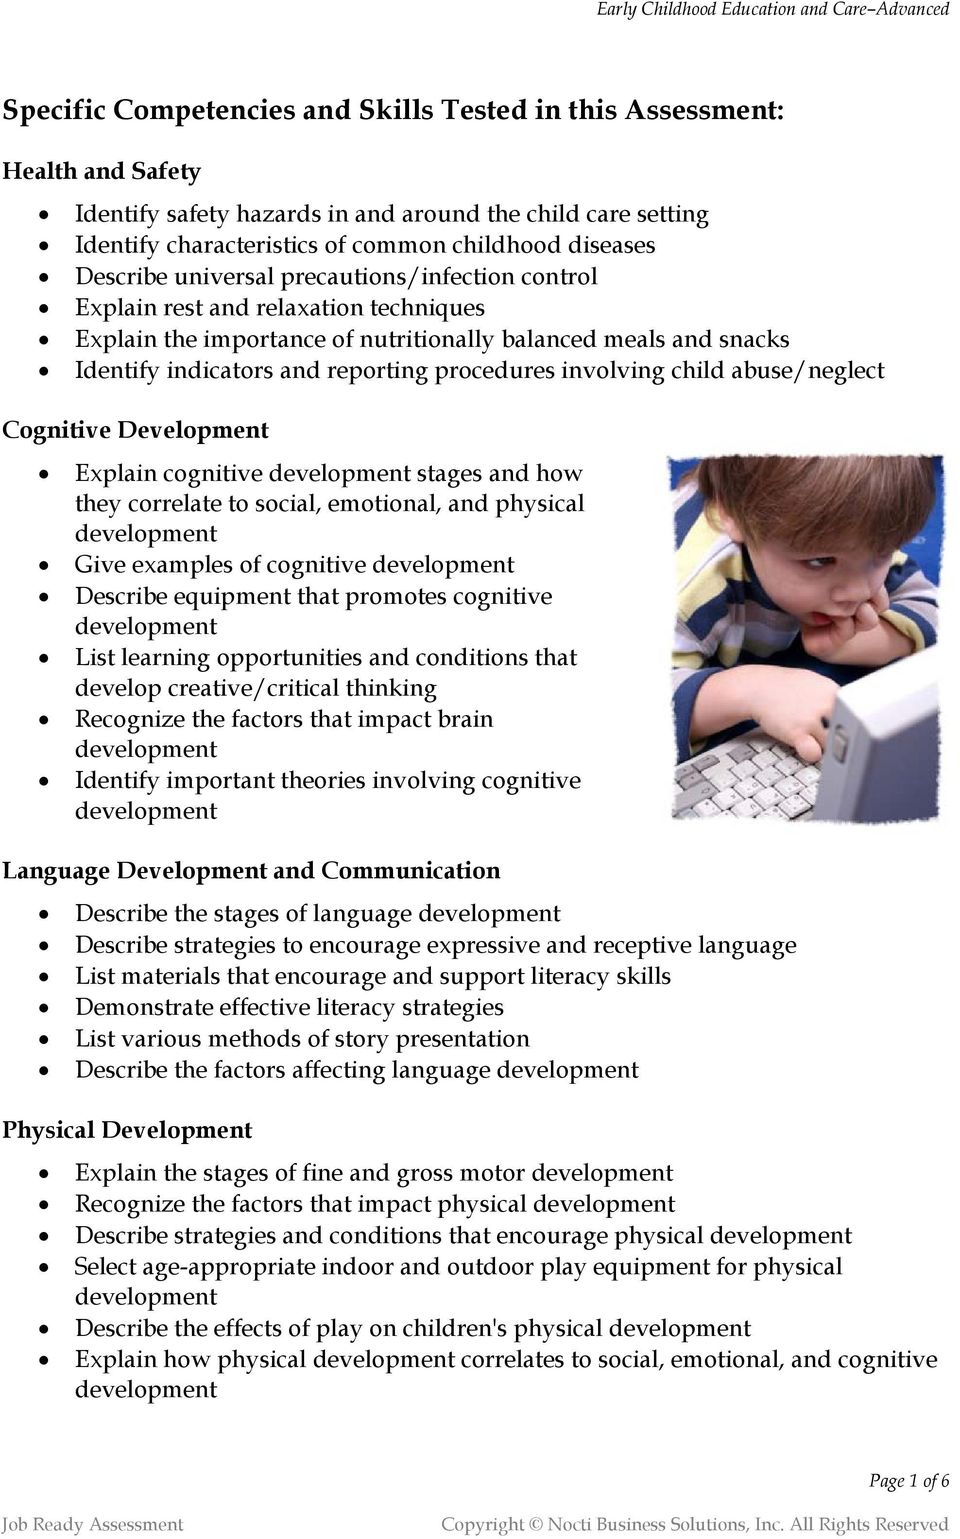 involving child abuse/neglect Cognitive Development Explain cognitive stages and how they correlate to social, emotional, and physical Give examples of cognitive Describe equipment that promotes